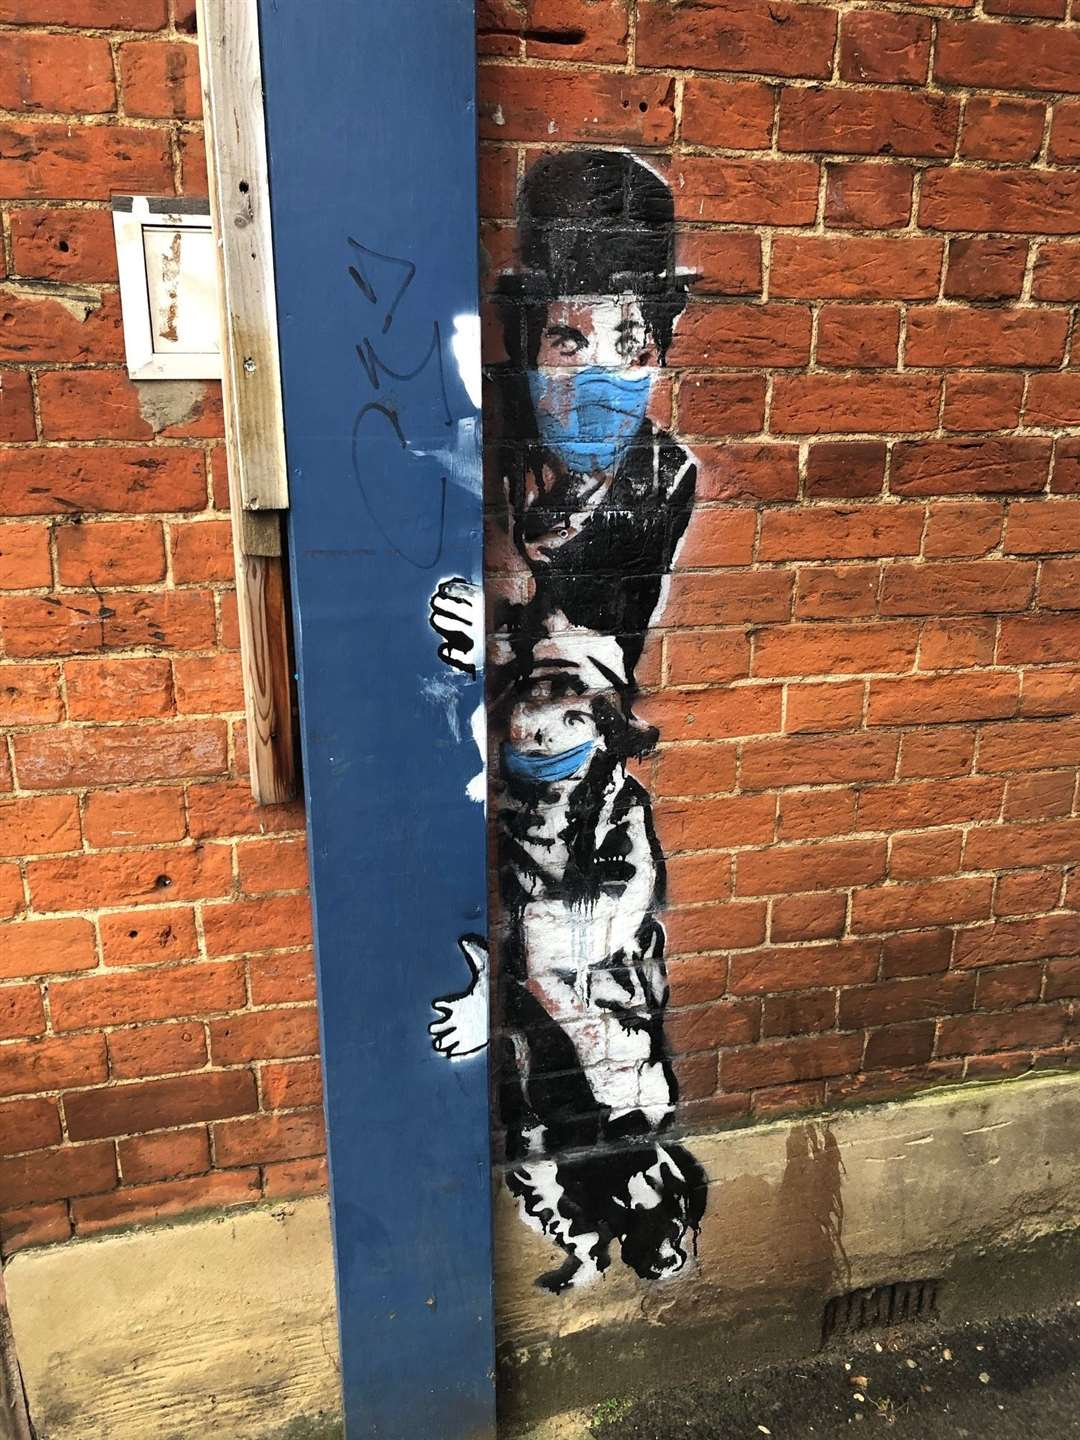 The Charlie Chaplin street art by WHSmith in Stortford's high street (43339057)